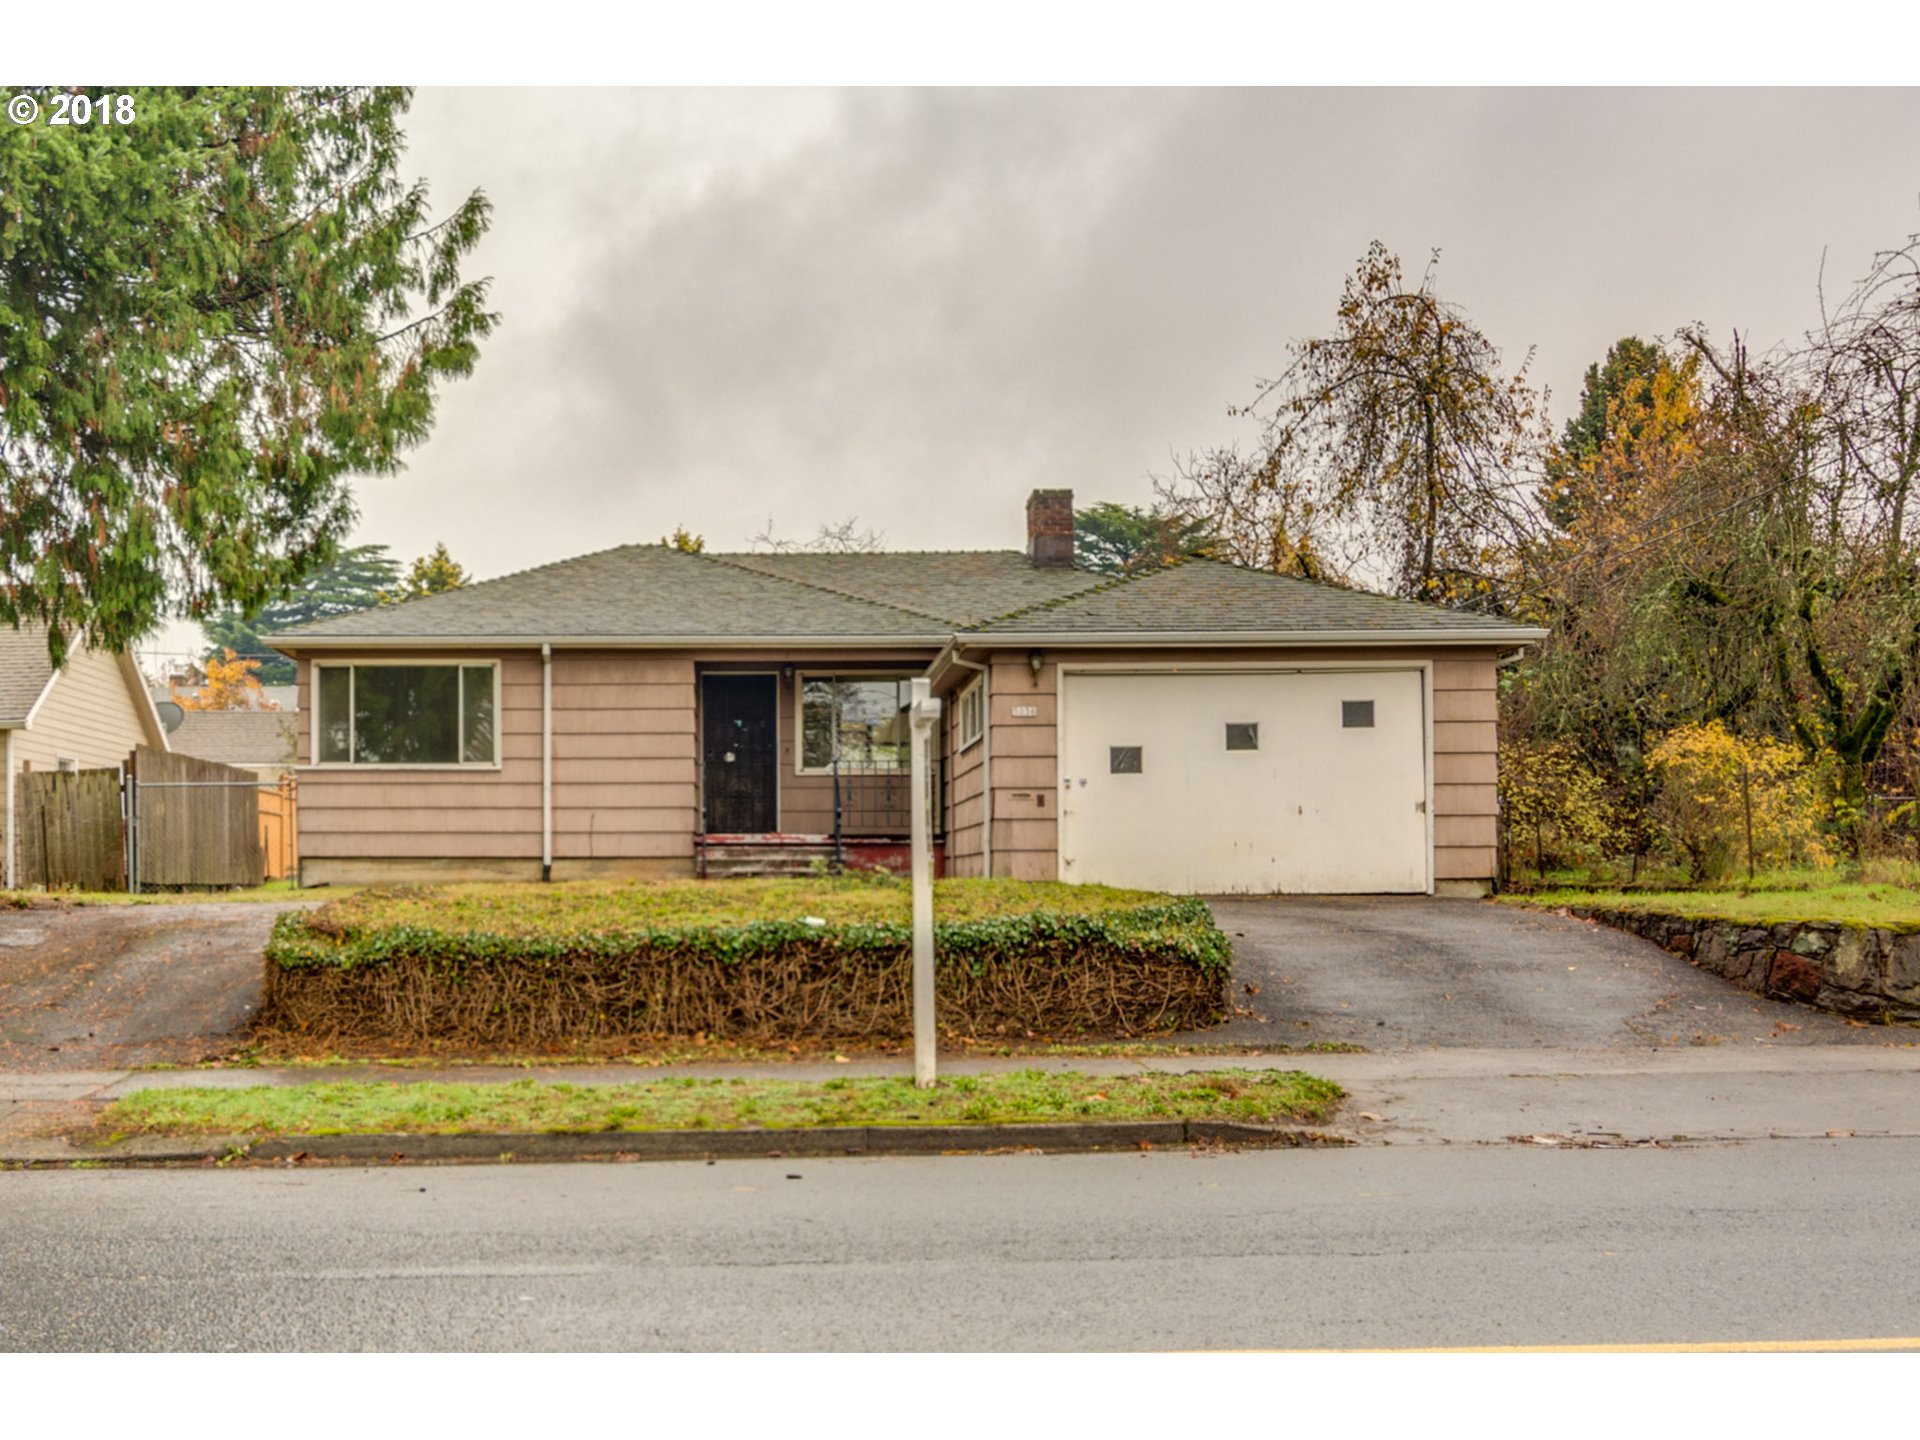 1660 sq. ft 2 bedrooms 1 bathrooms  House ,Portland, OR